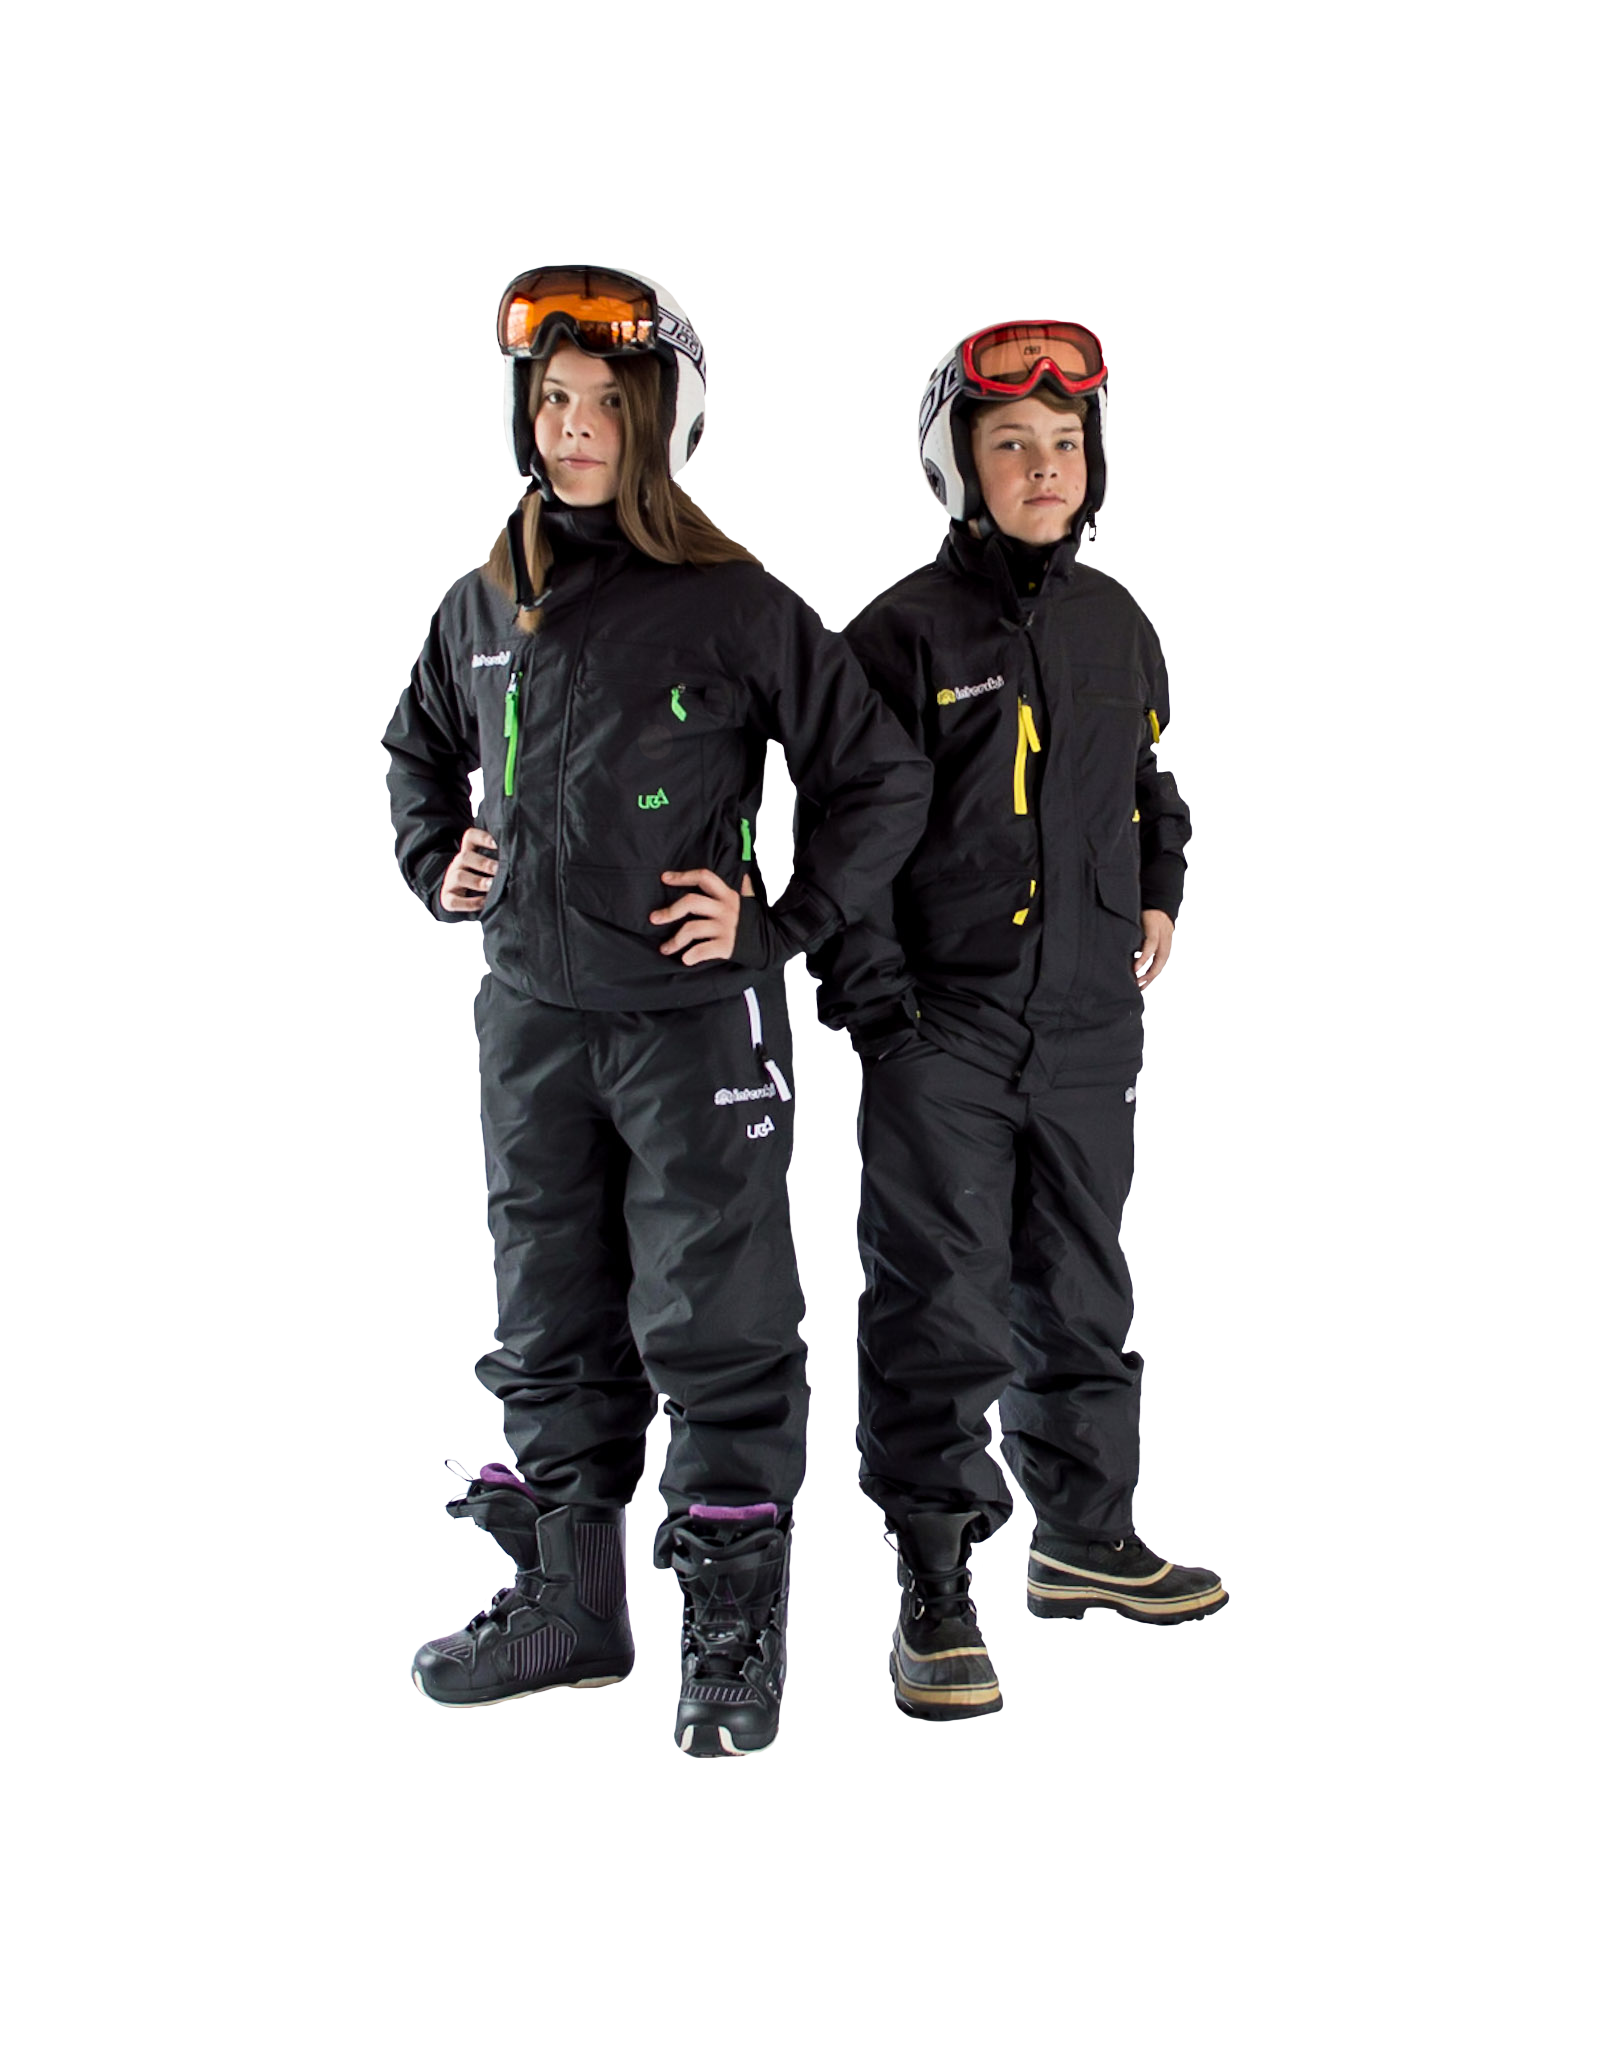 Rental Ski Suit and Helmet